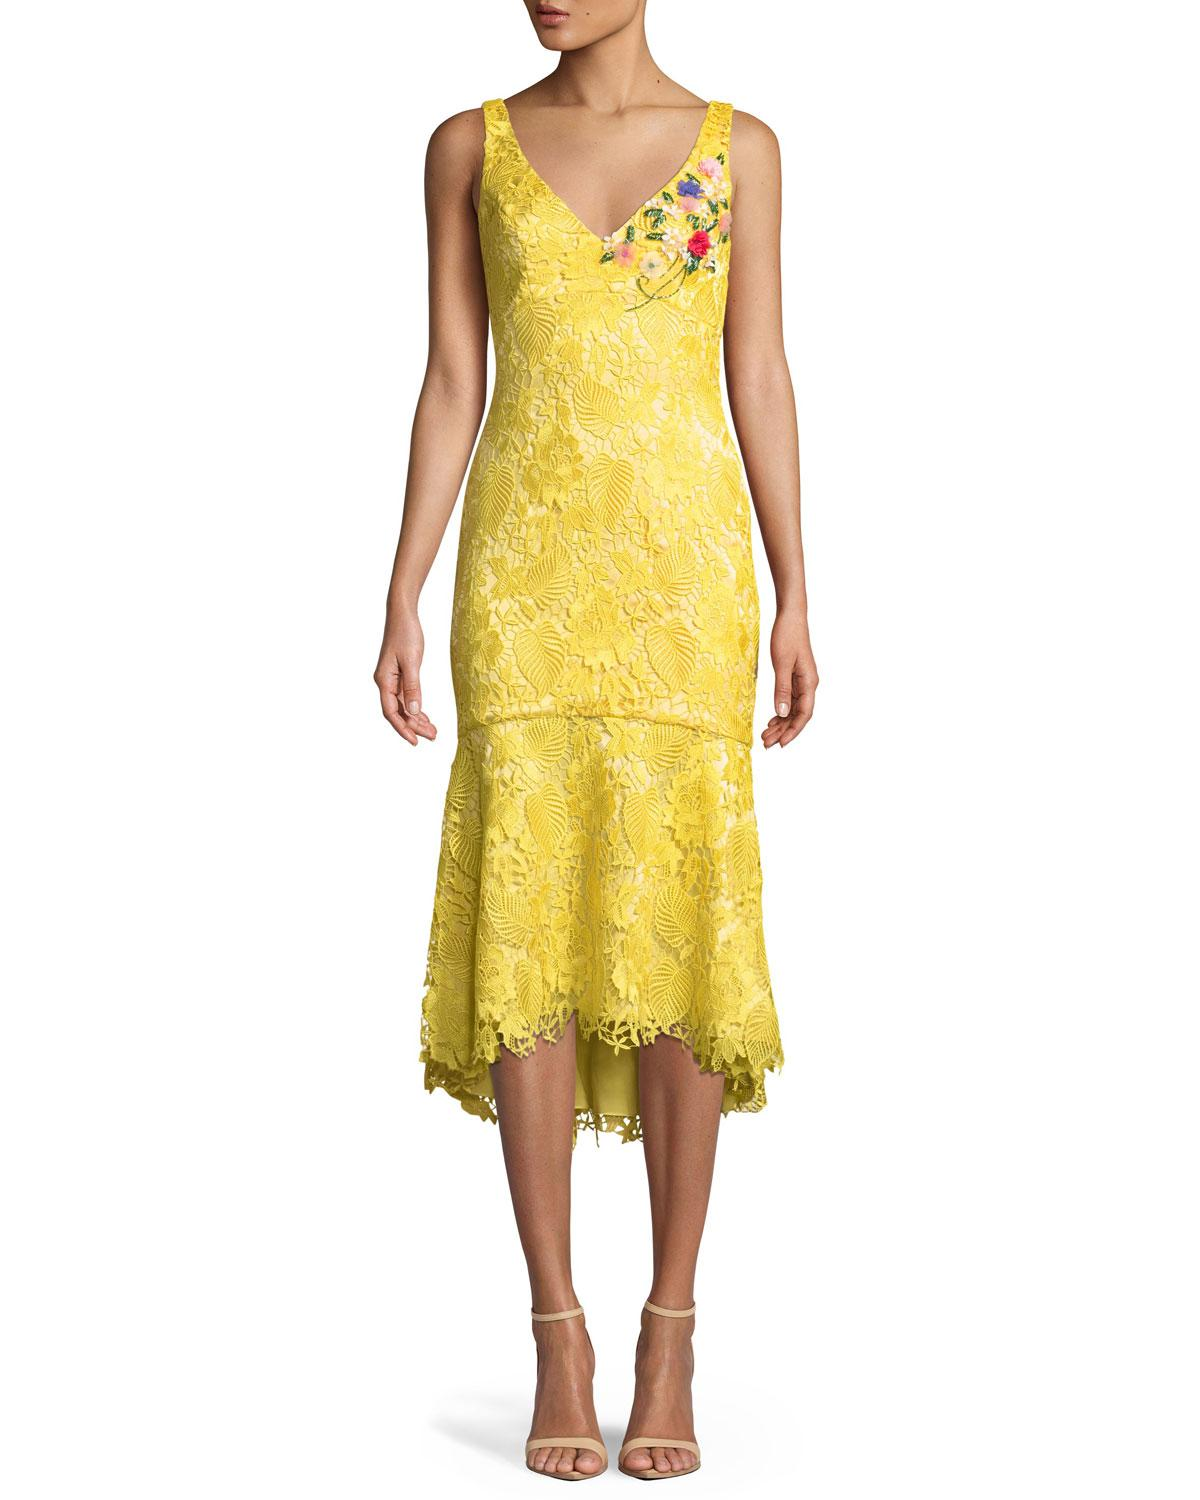 dc044ead31 Lyst - THEIA Lace V-neck Dress W  Floral Embroidery in Metallic ...